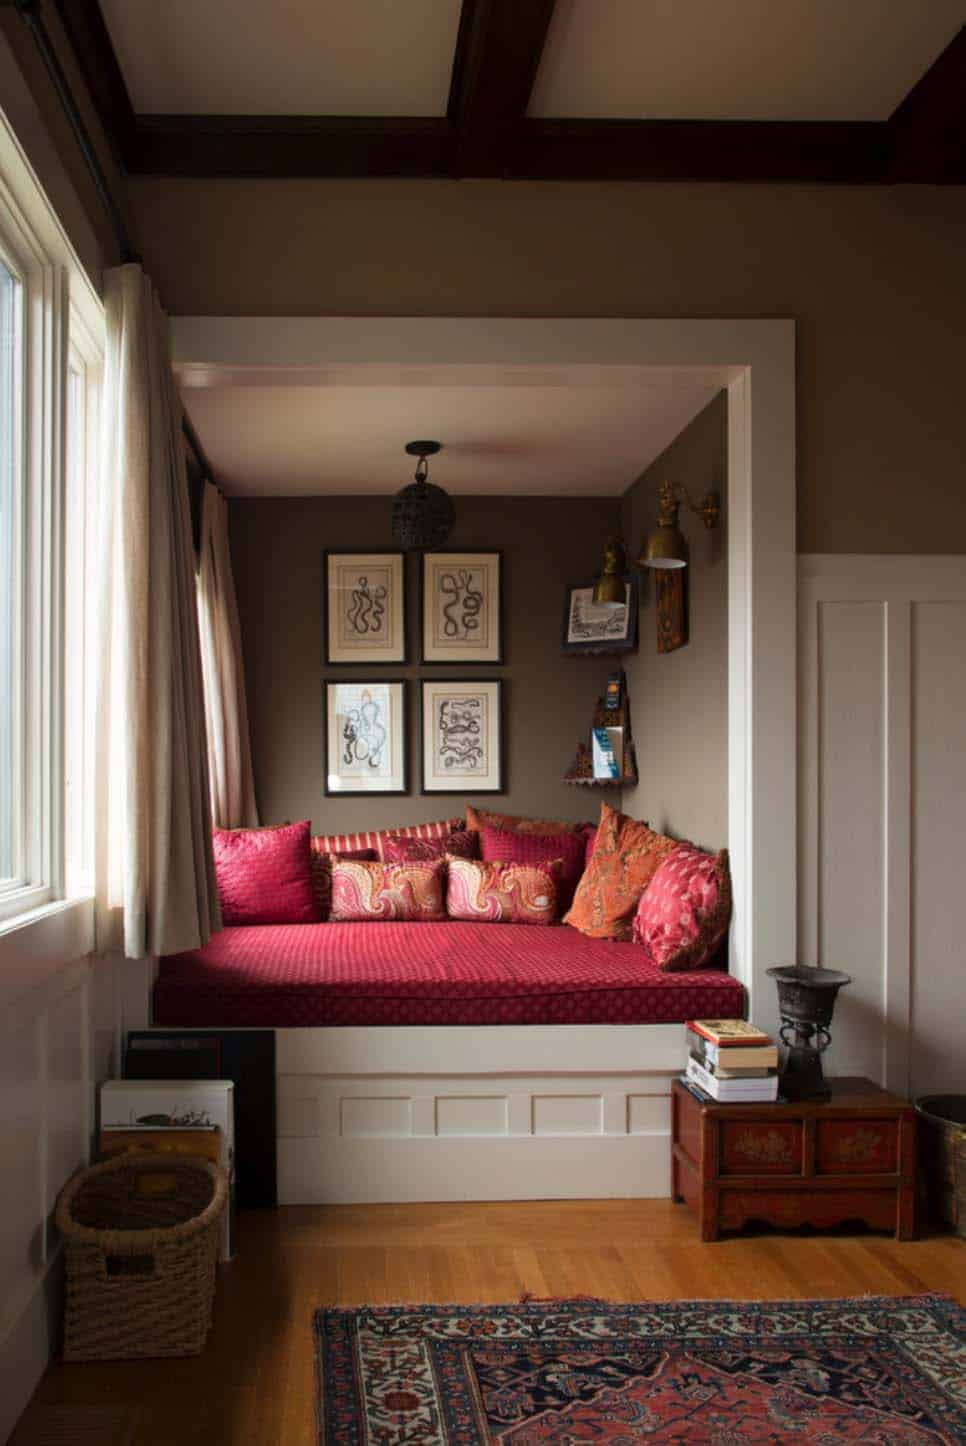 Reading Room Design Ideas: 30 Incredibly Cozy Built-in Reading Nooks Designed For